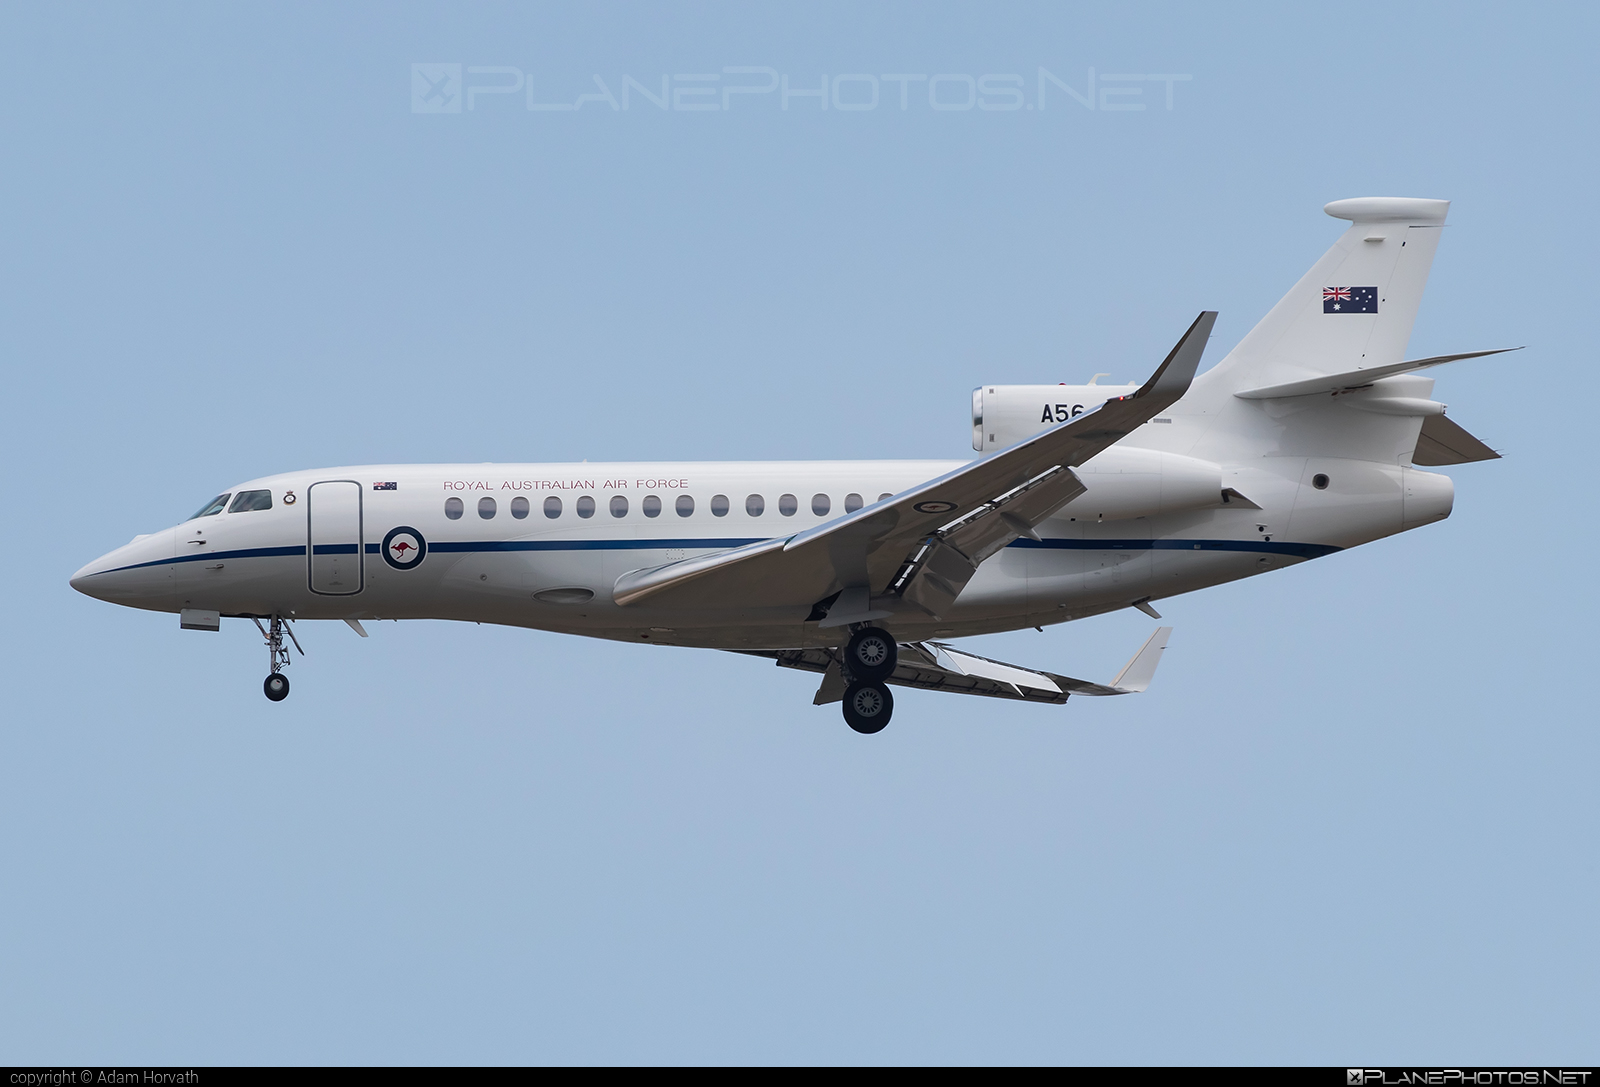 Dassault Falcon 7X - A56-002 operated by Royal Australian Air Force (RAAF) #dassault #dassaultfalcon #dassaultfalcon7x #falcon7x #raaf #royalaustralianairforce